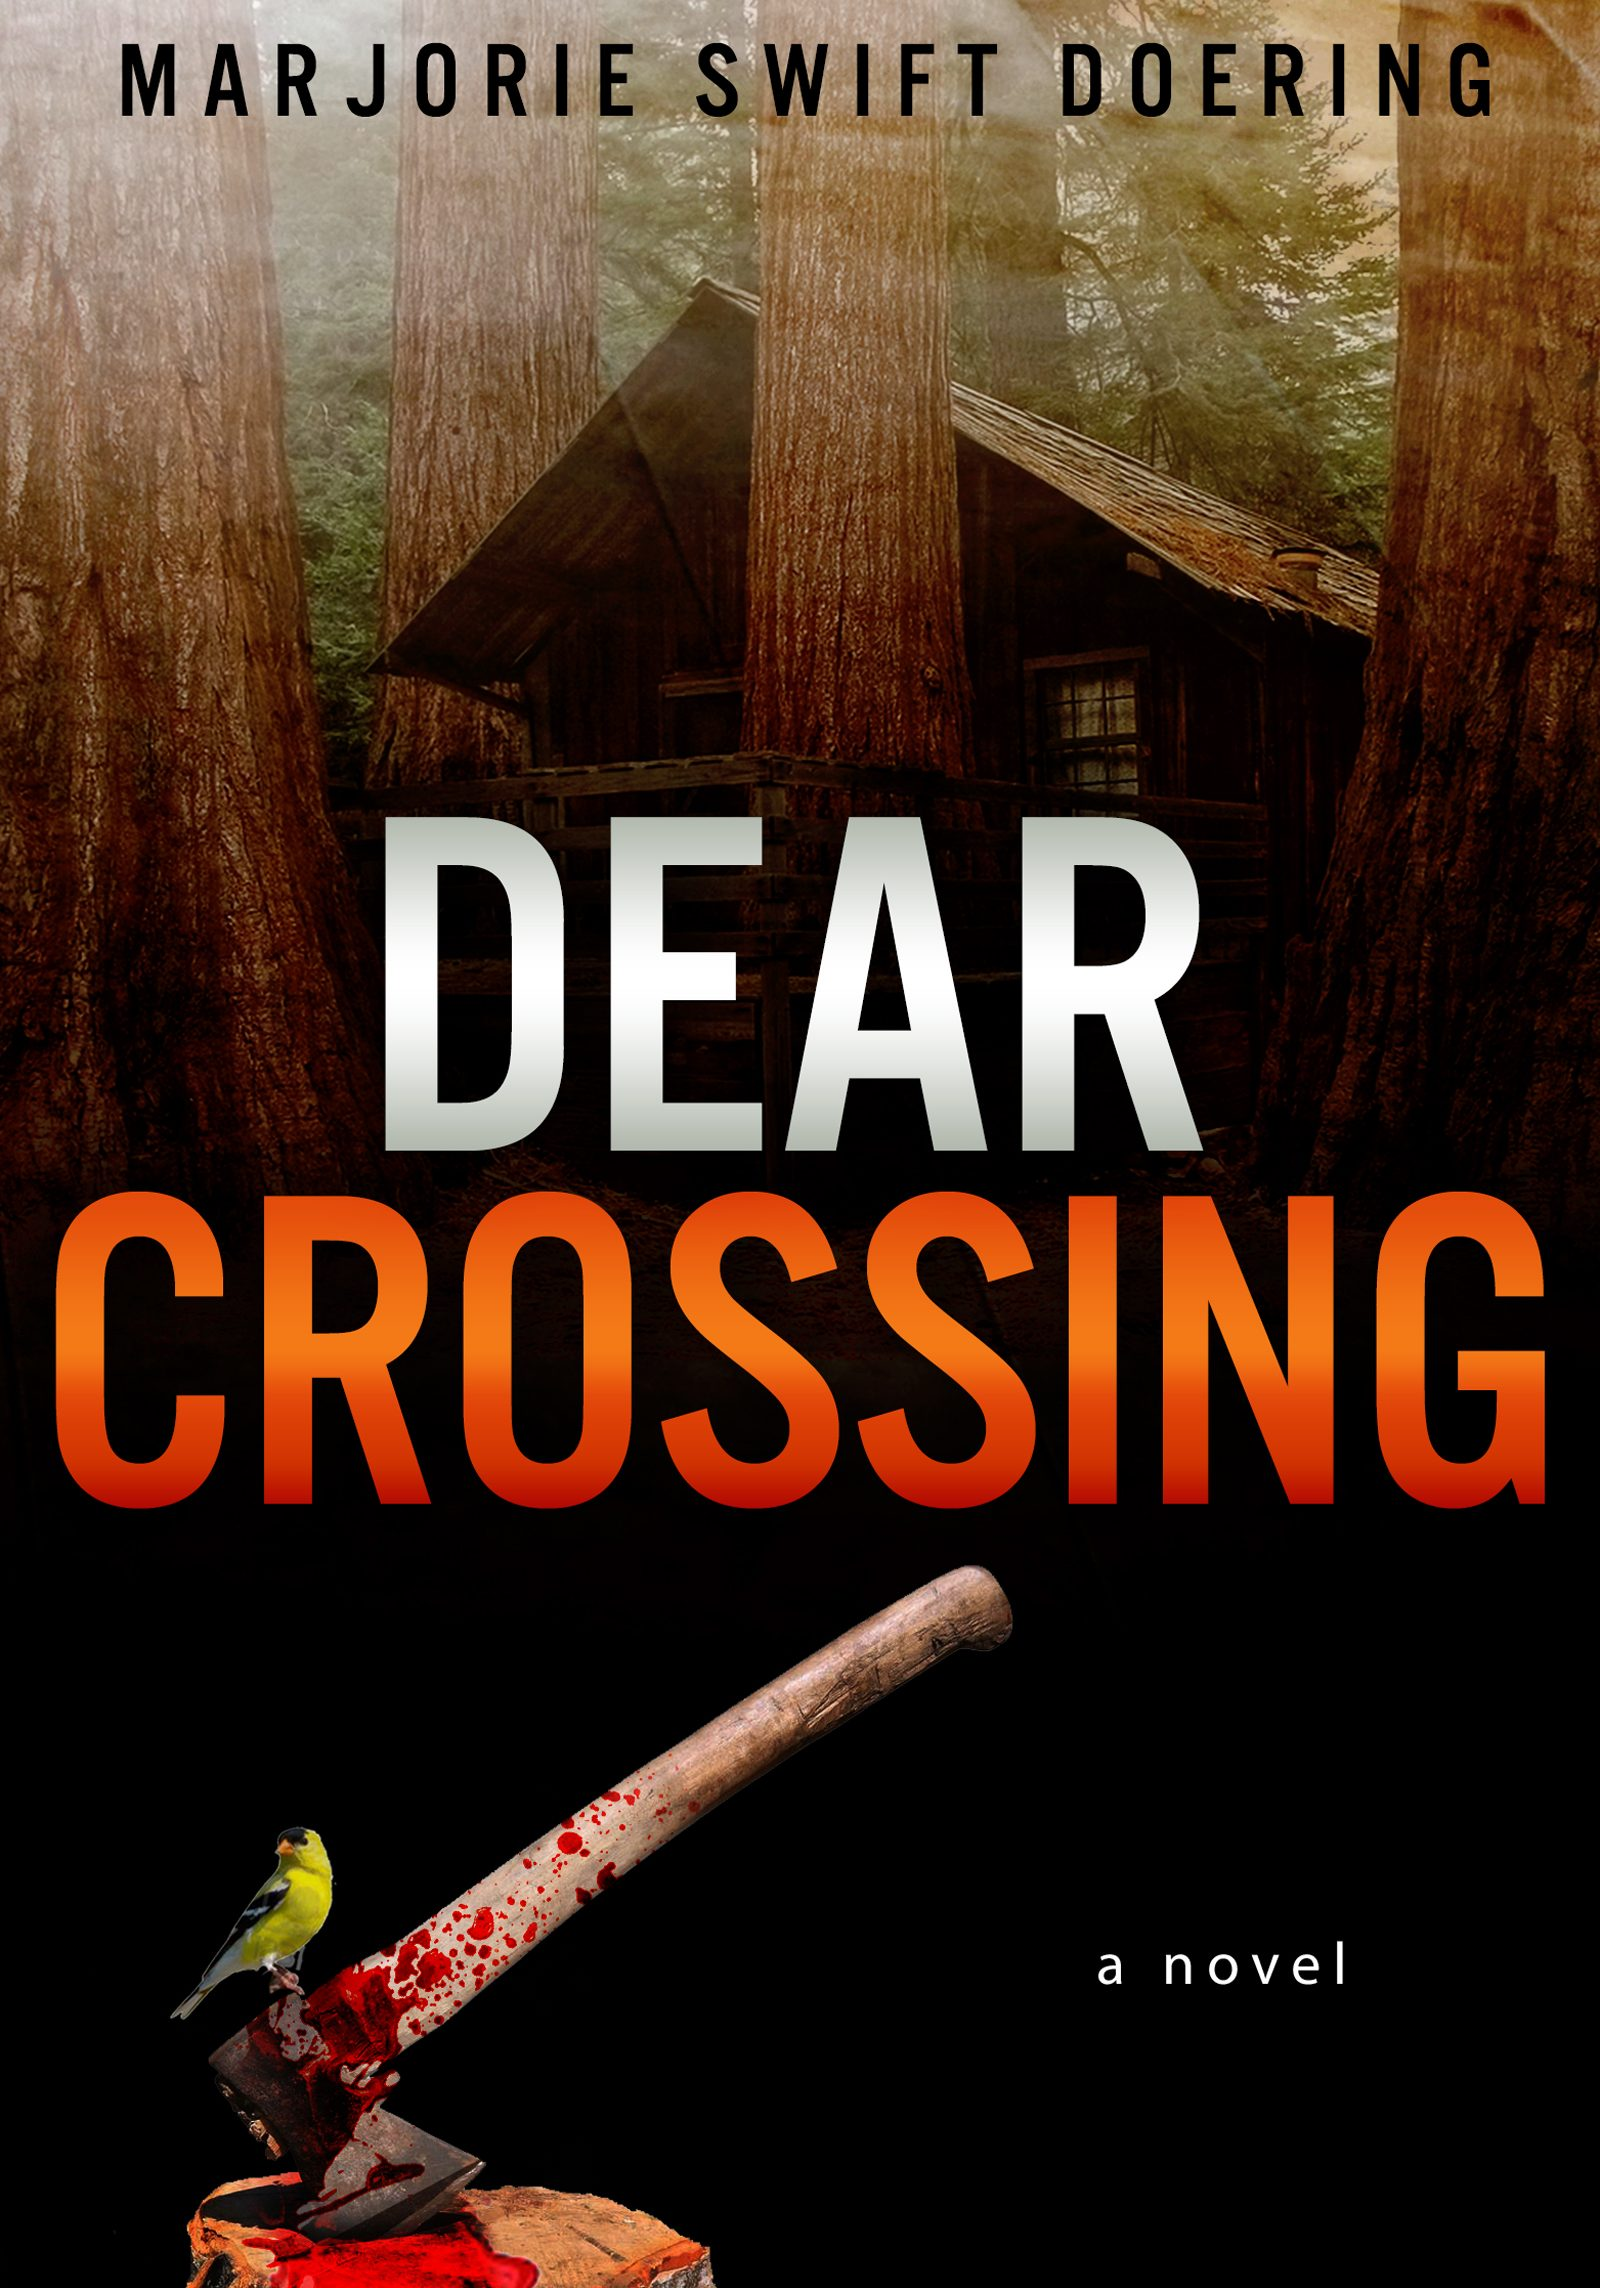 Dear Crossing book trailer loewenherz creative